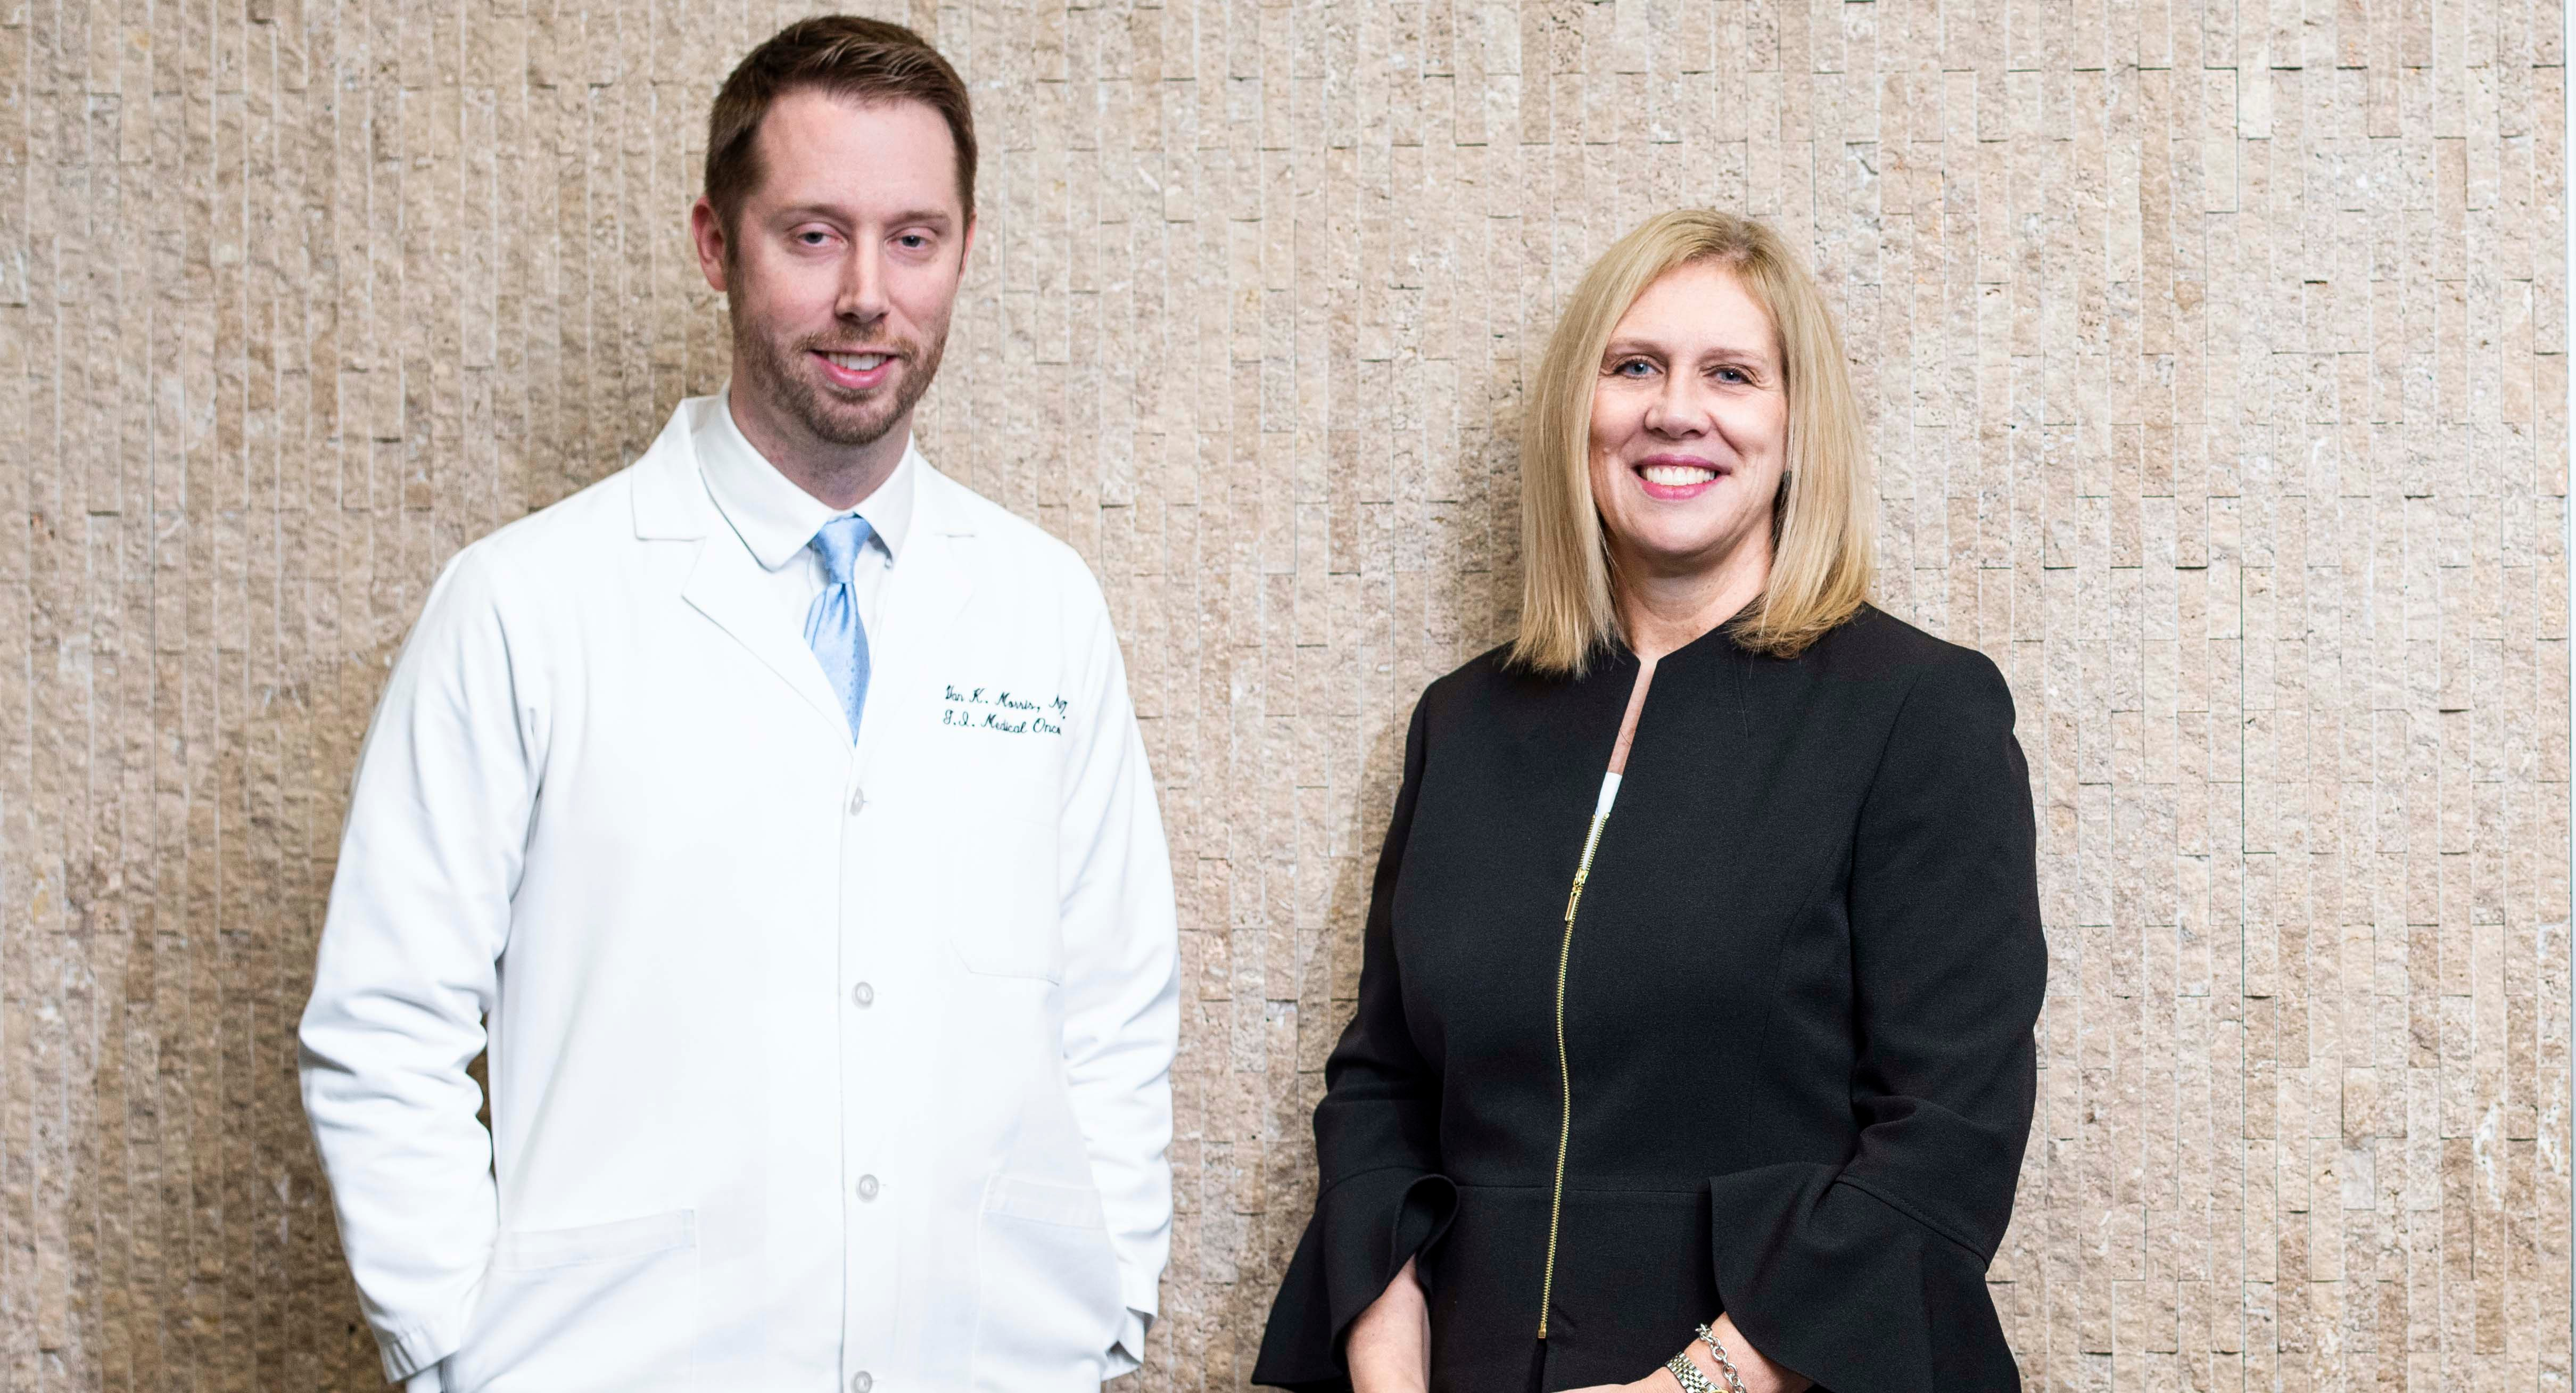 Van Morris, M.D., says Diane Bodurka, M.D., has been instrumental in guiding his career from his earliest days as a medical student.